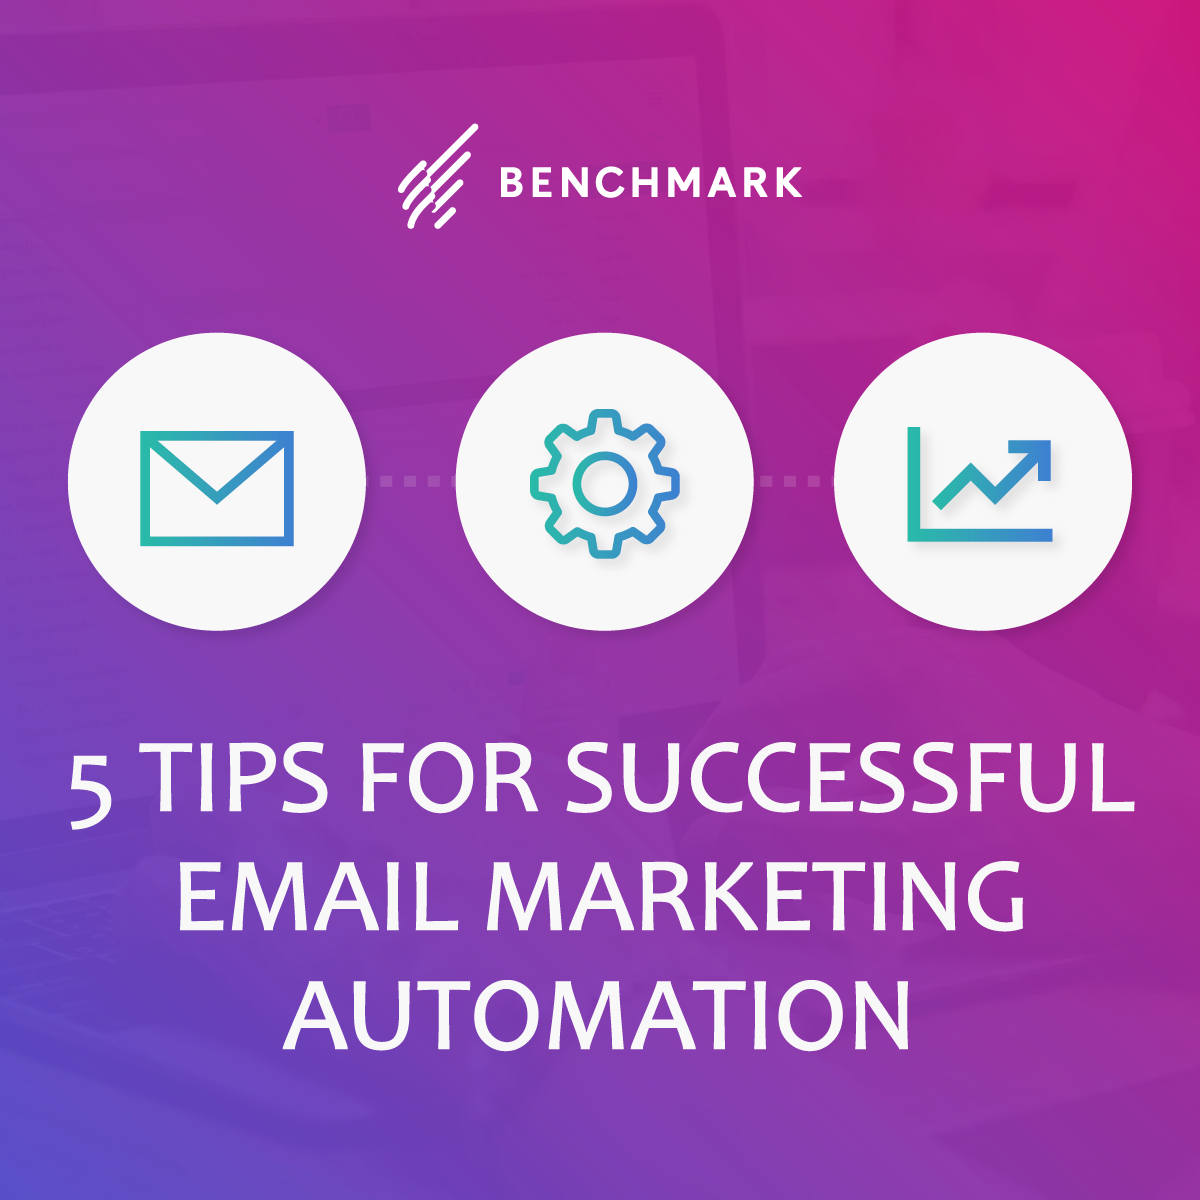 5 Tips for Successful Email Marketing Automation